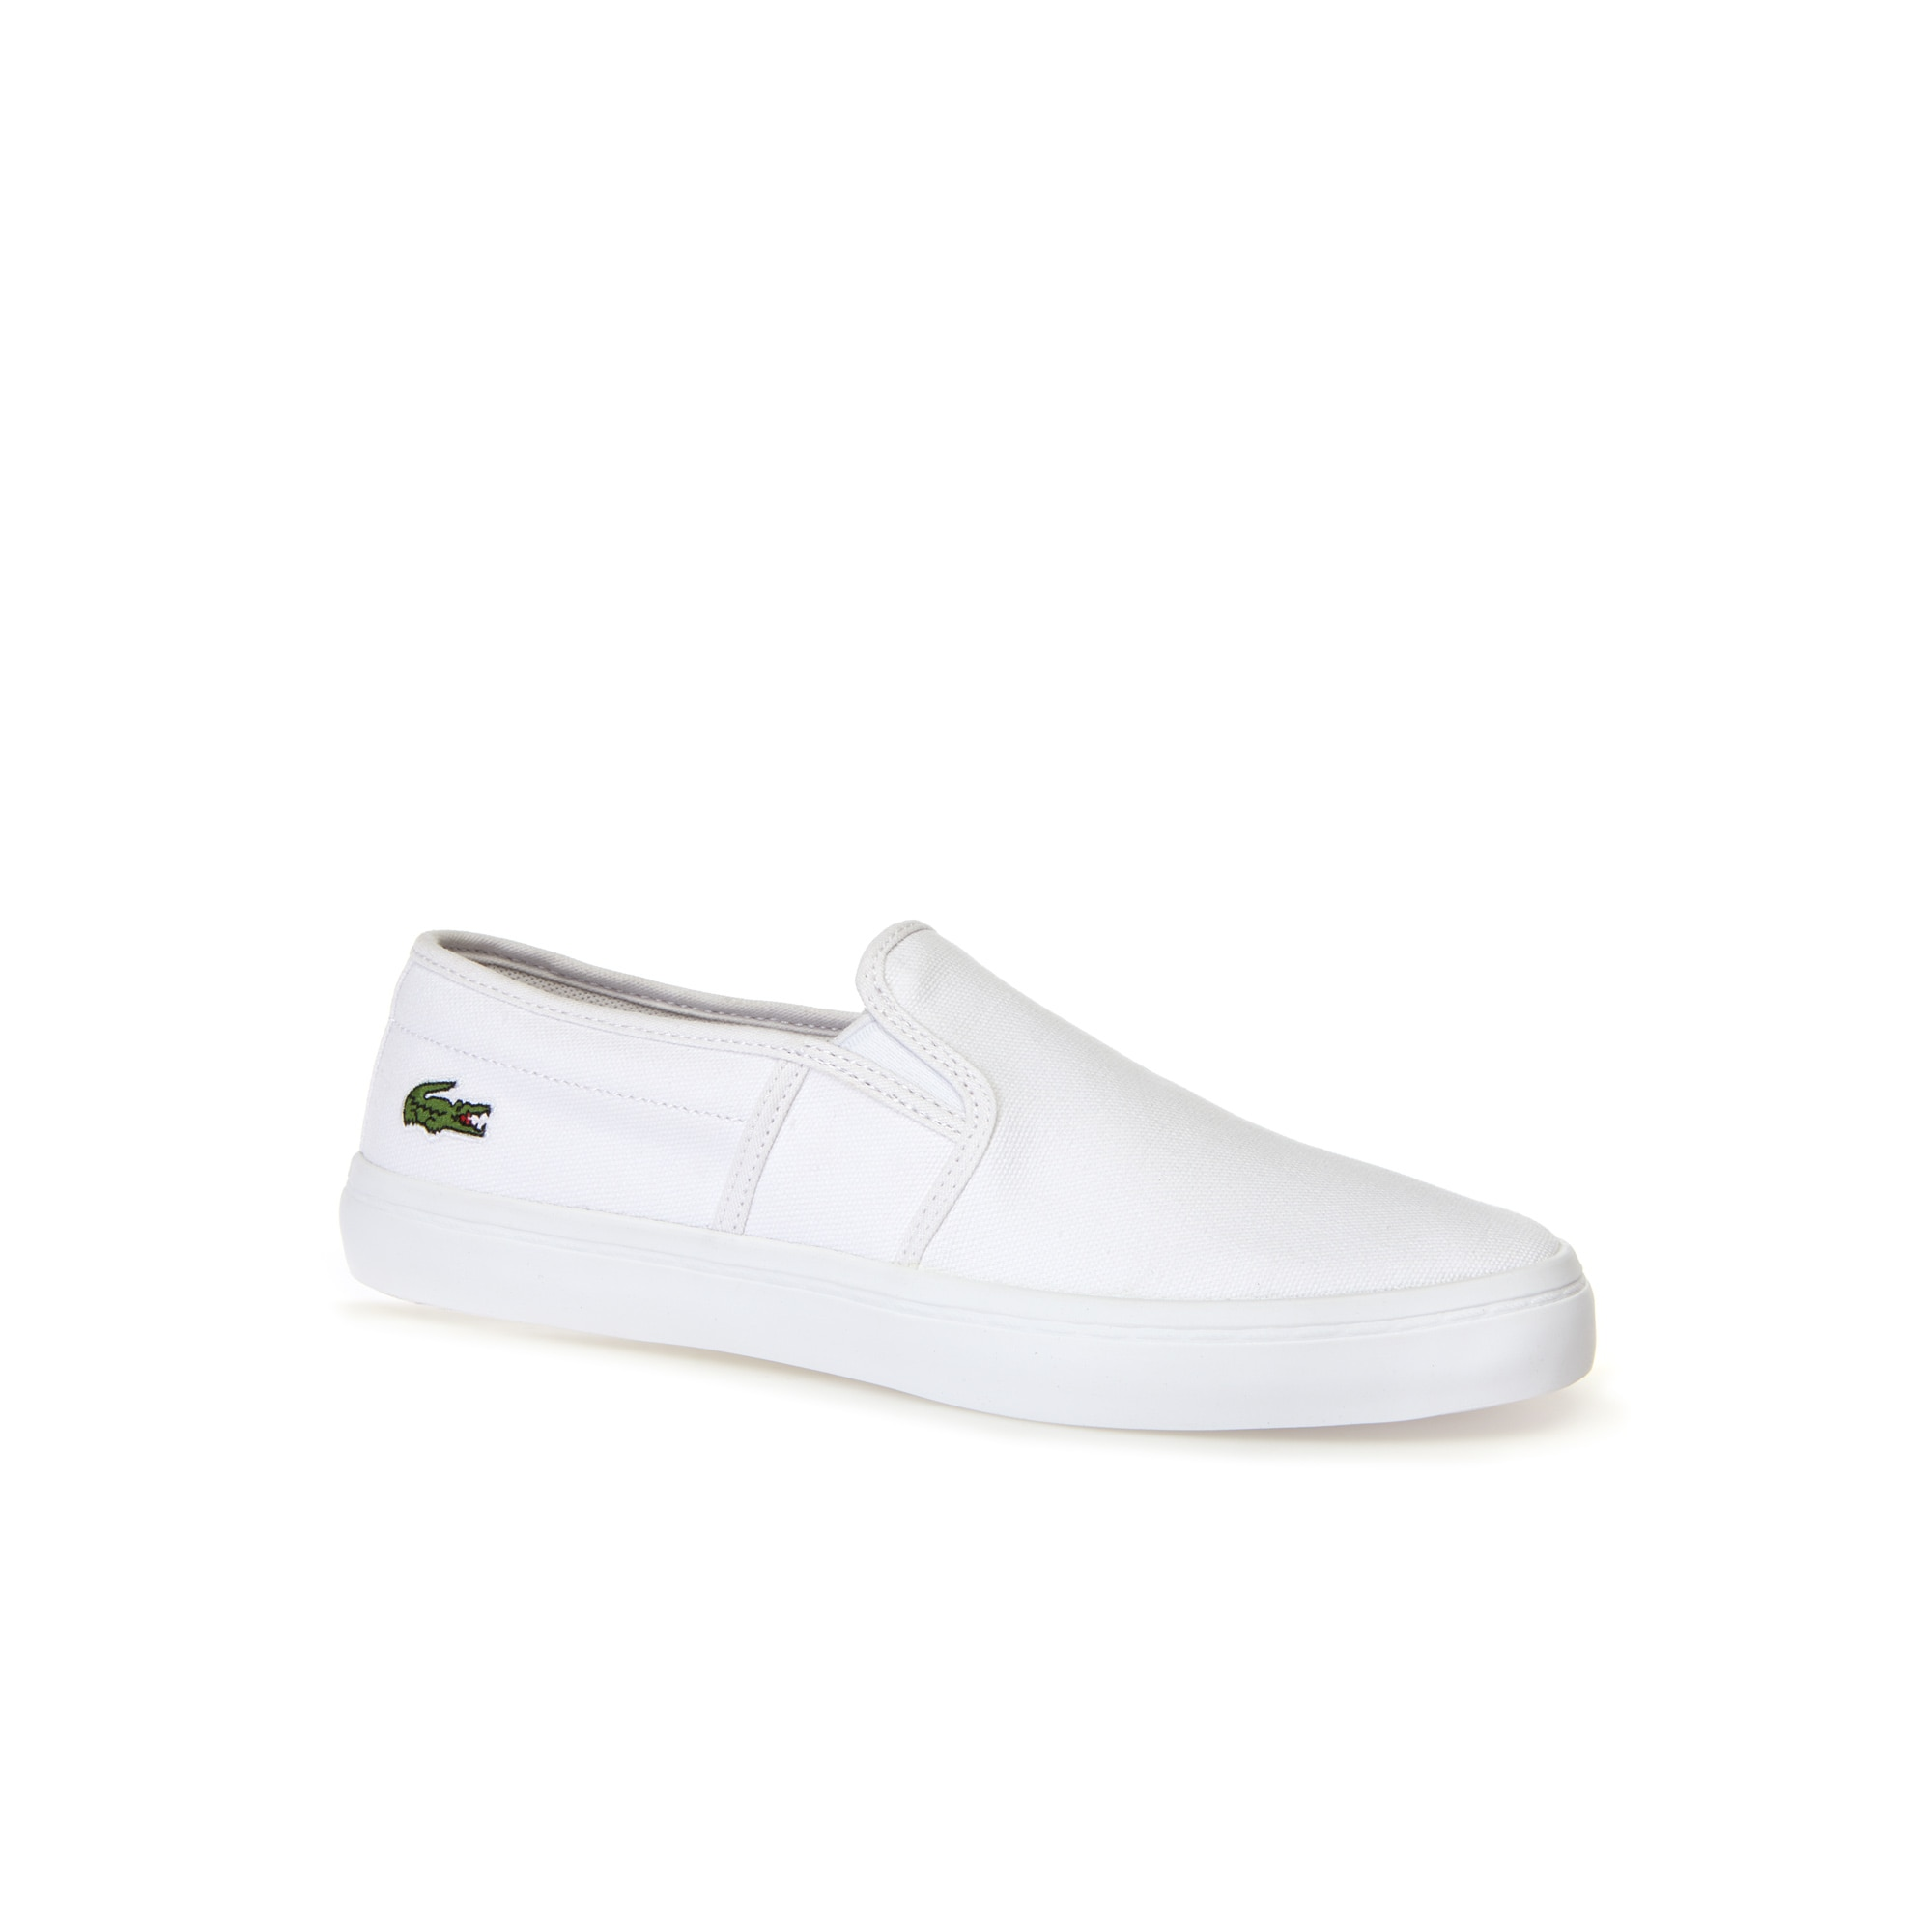 7cbbc72b6 Women s Gazon BL Canvas Slip-ons ...